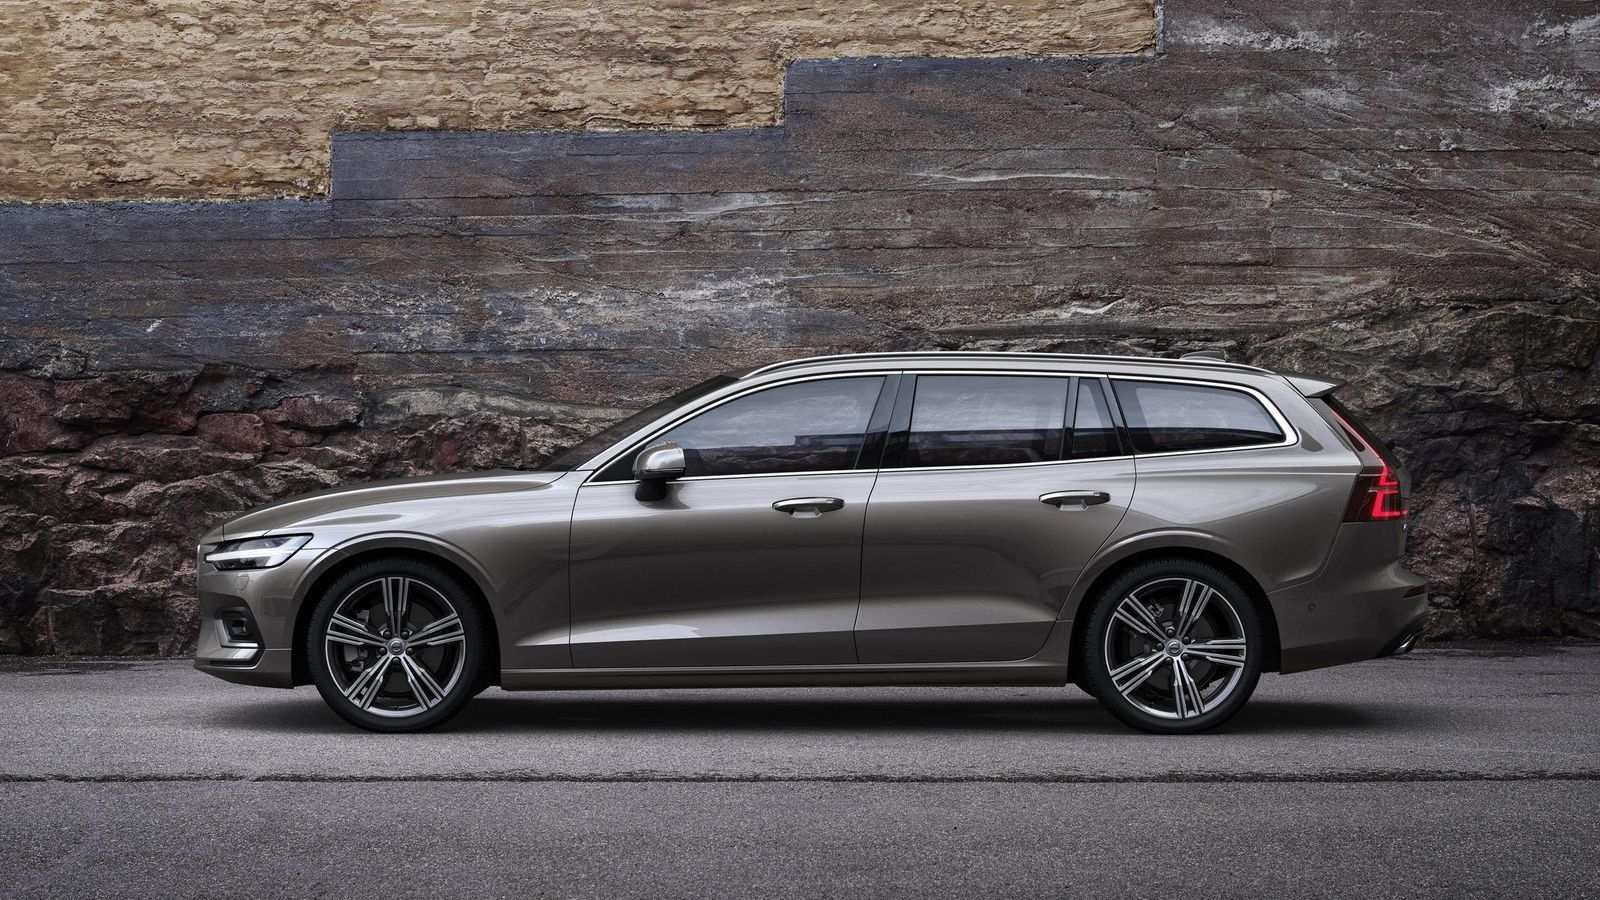 93 Gallery of New Volvo No Gas 2019 Specs Pricing with New Volvo No Gas 2019 Specs